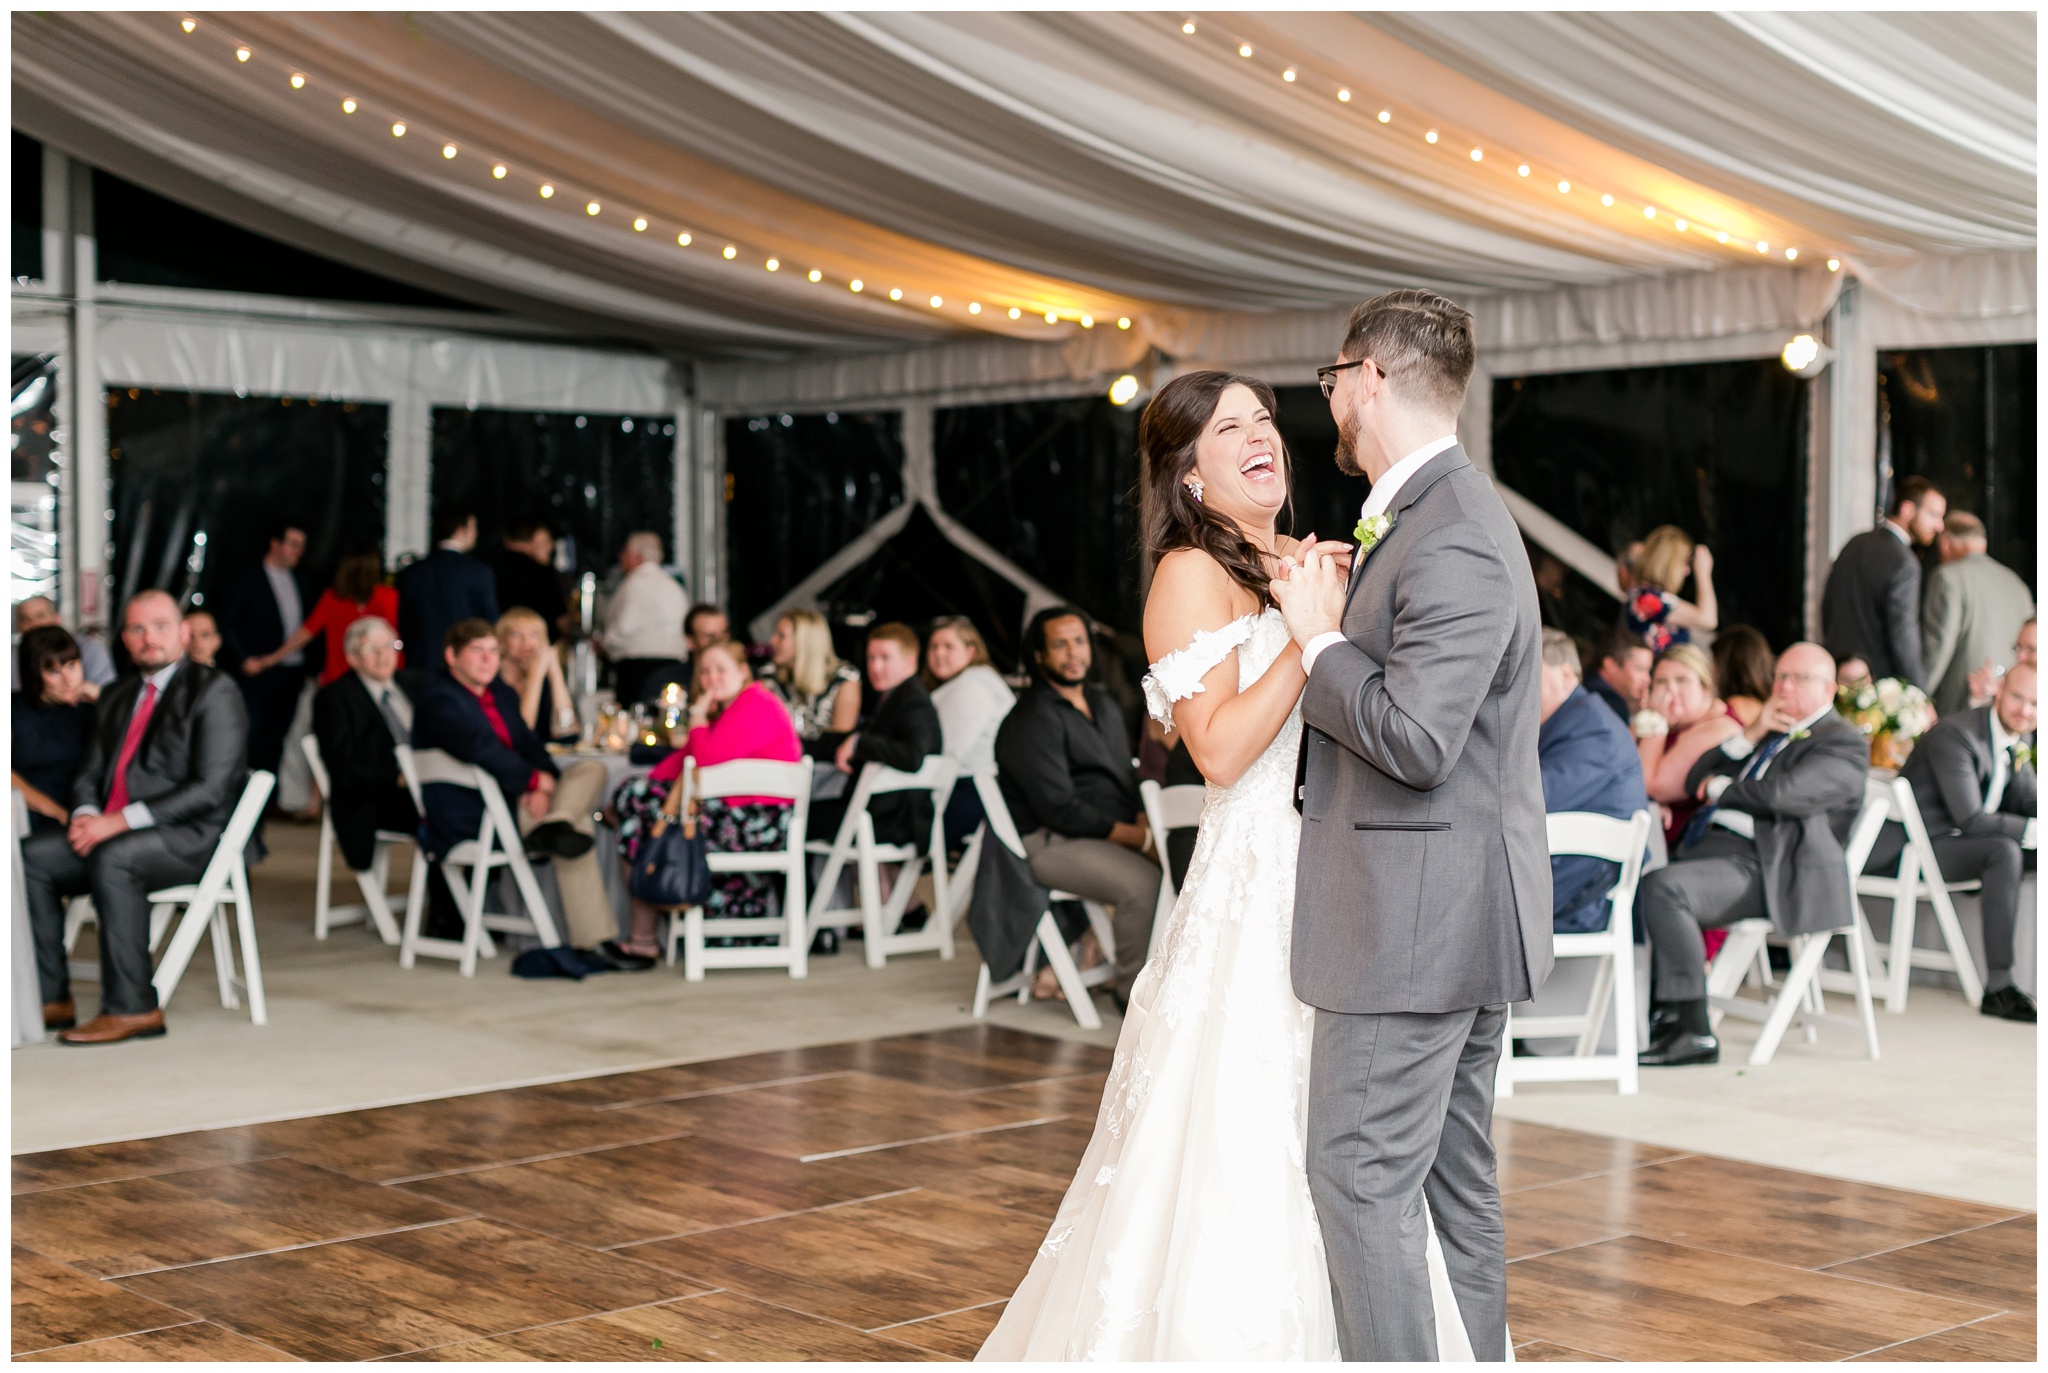 bishops_bay_country_club_wedding_middleton_wisconsin_caynay_photo_4745.jpg